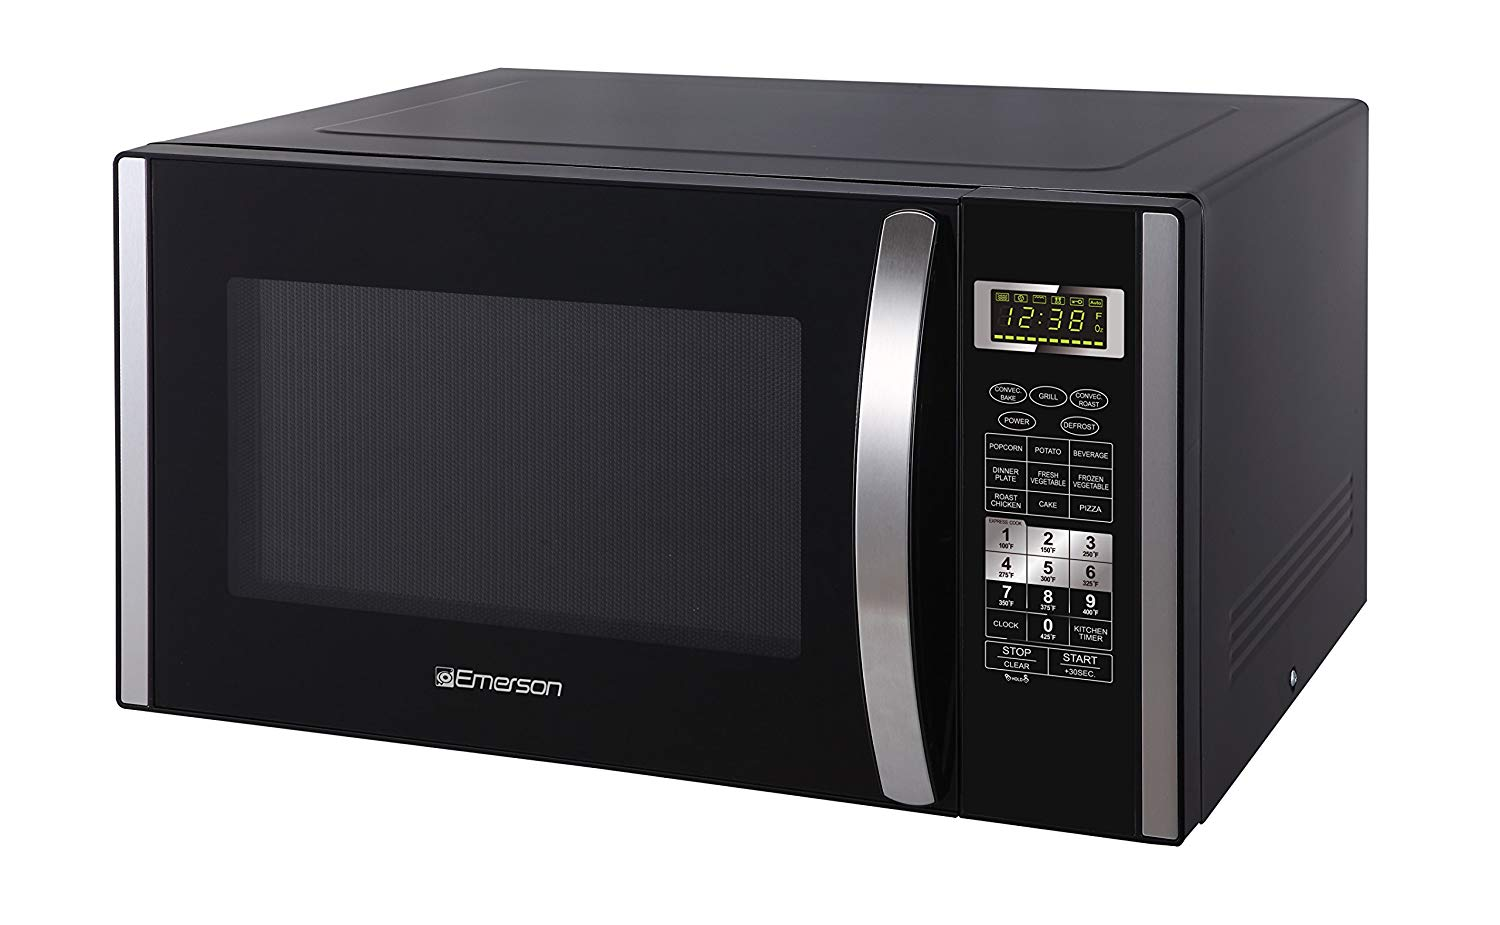 Emerson MWCG1584SB Convection Microwave Oven with Grill